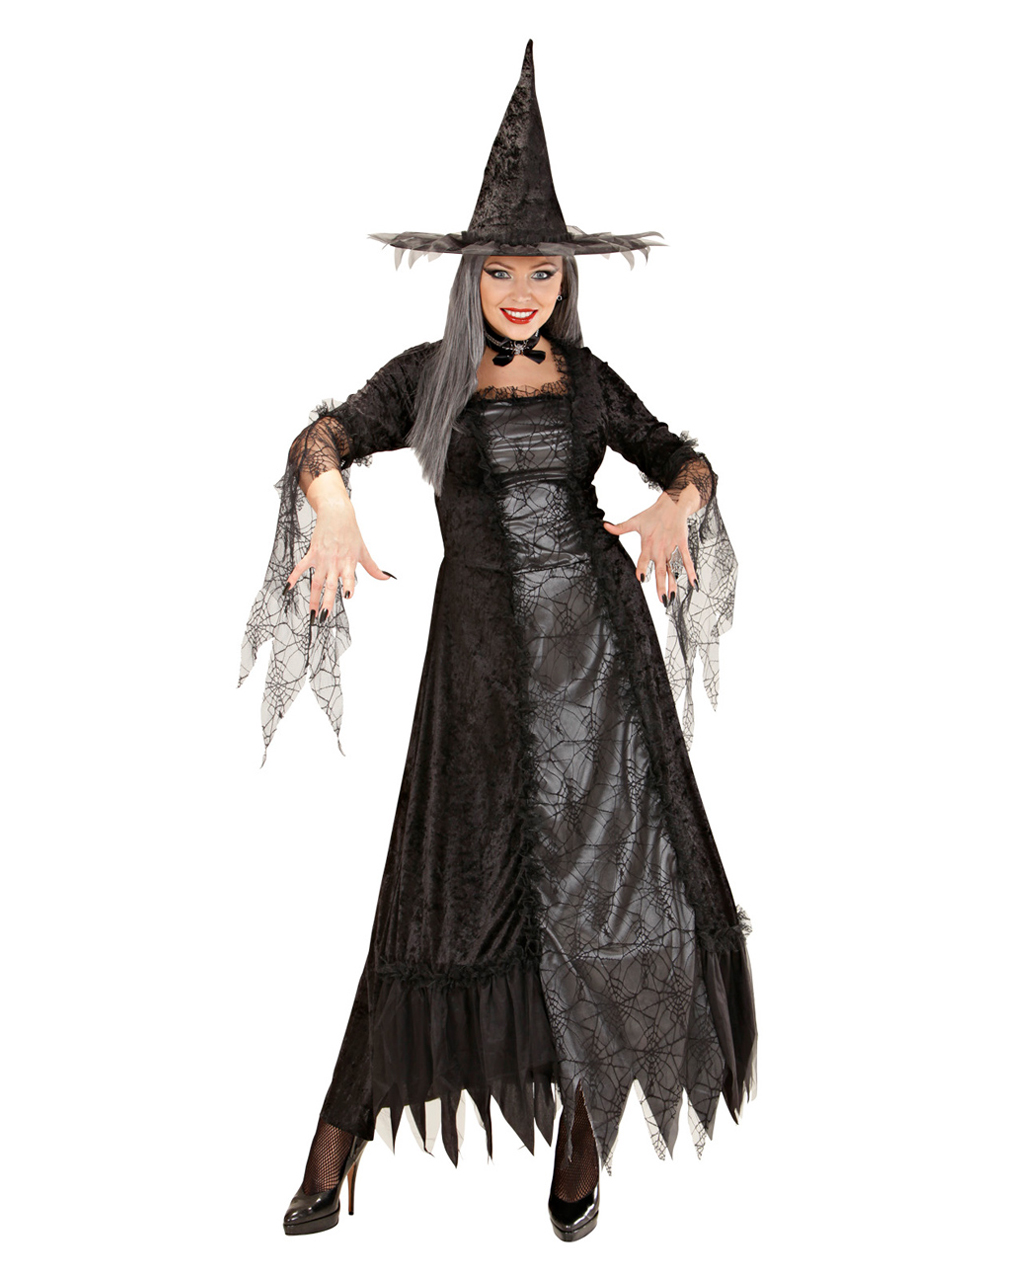 cb5b3740e1c Spider Lady Witch Costume Deluxe XL